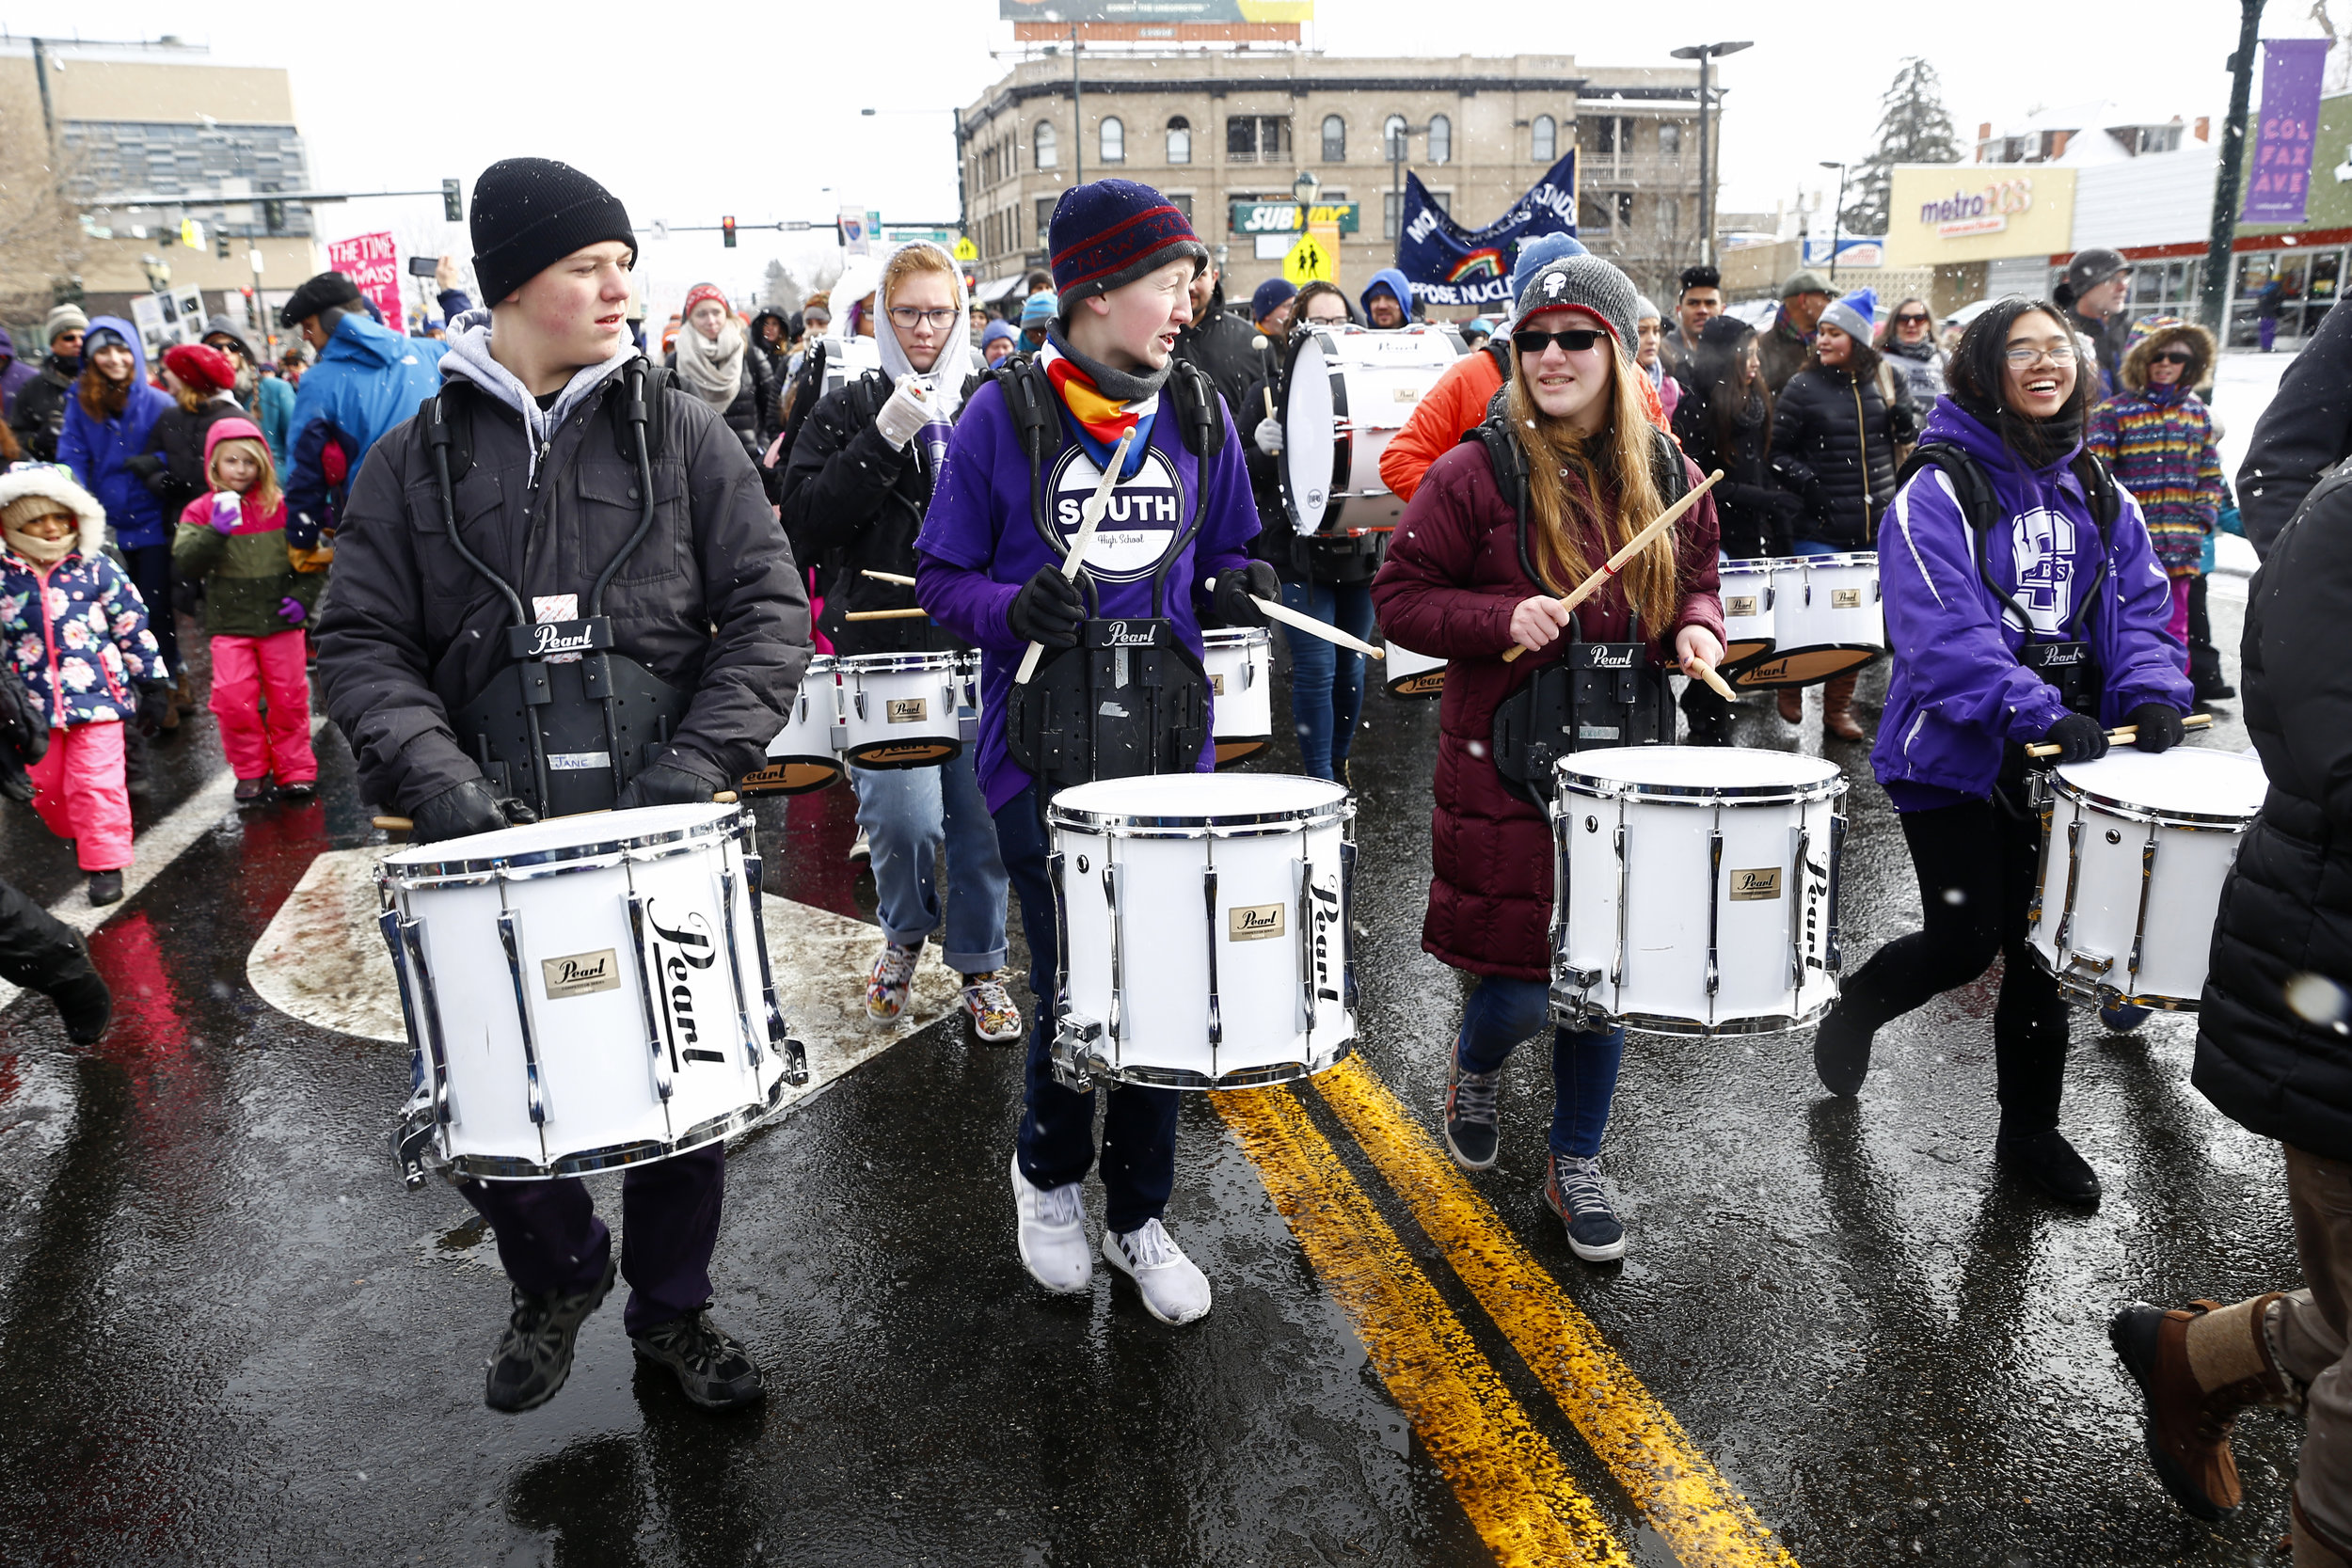 The morning was filled with drumlins from local Denver students. (Photo Credit: Aly McClaran)